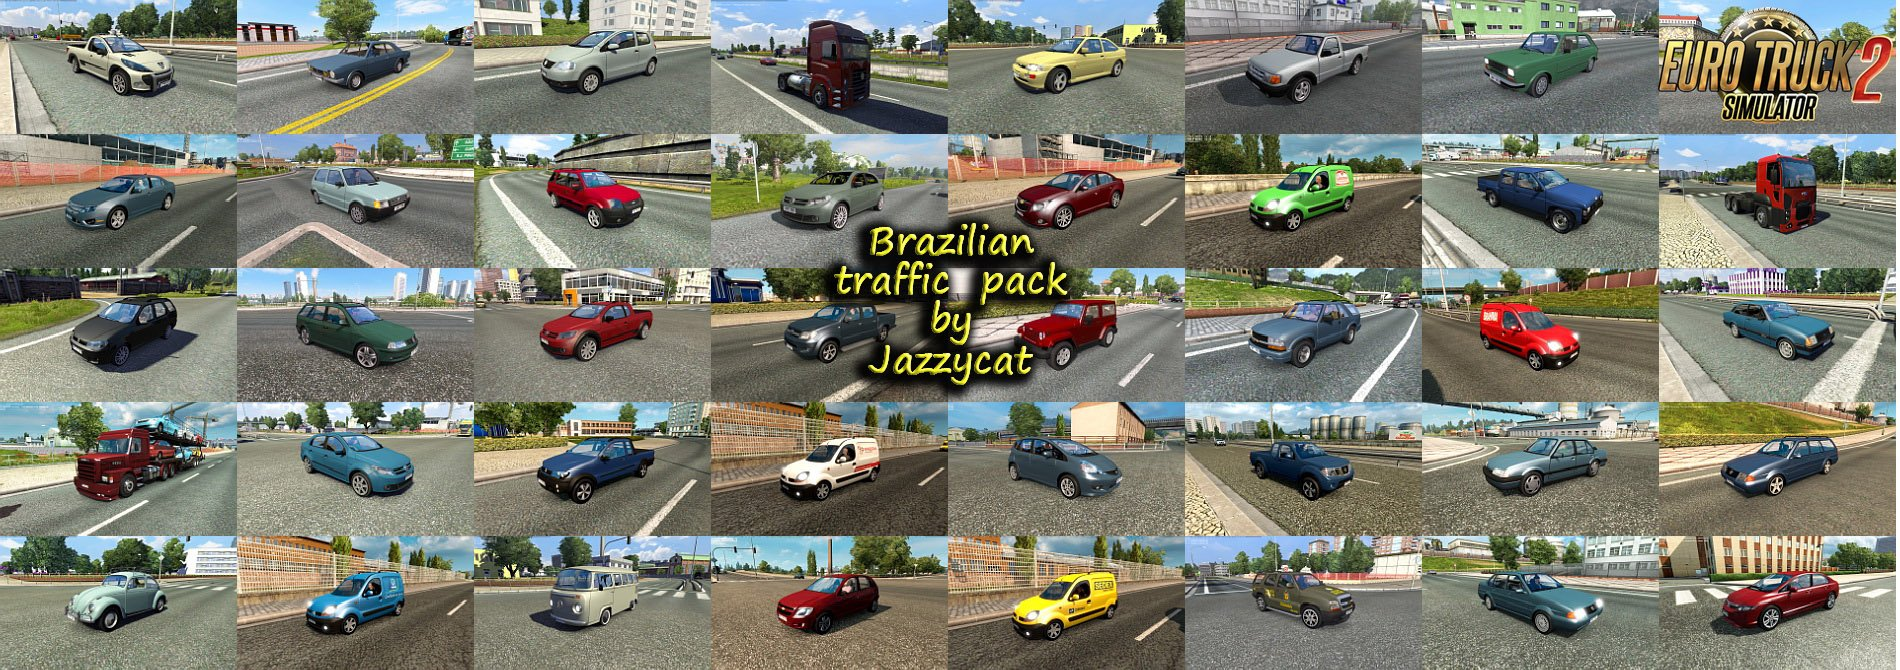 Brazilian Traffic Pack v2.1 by Jazzycat